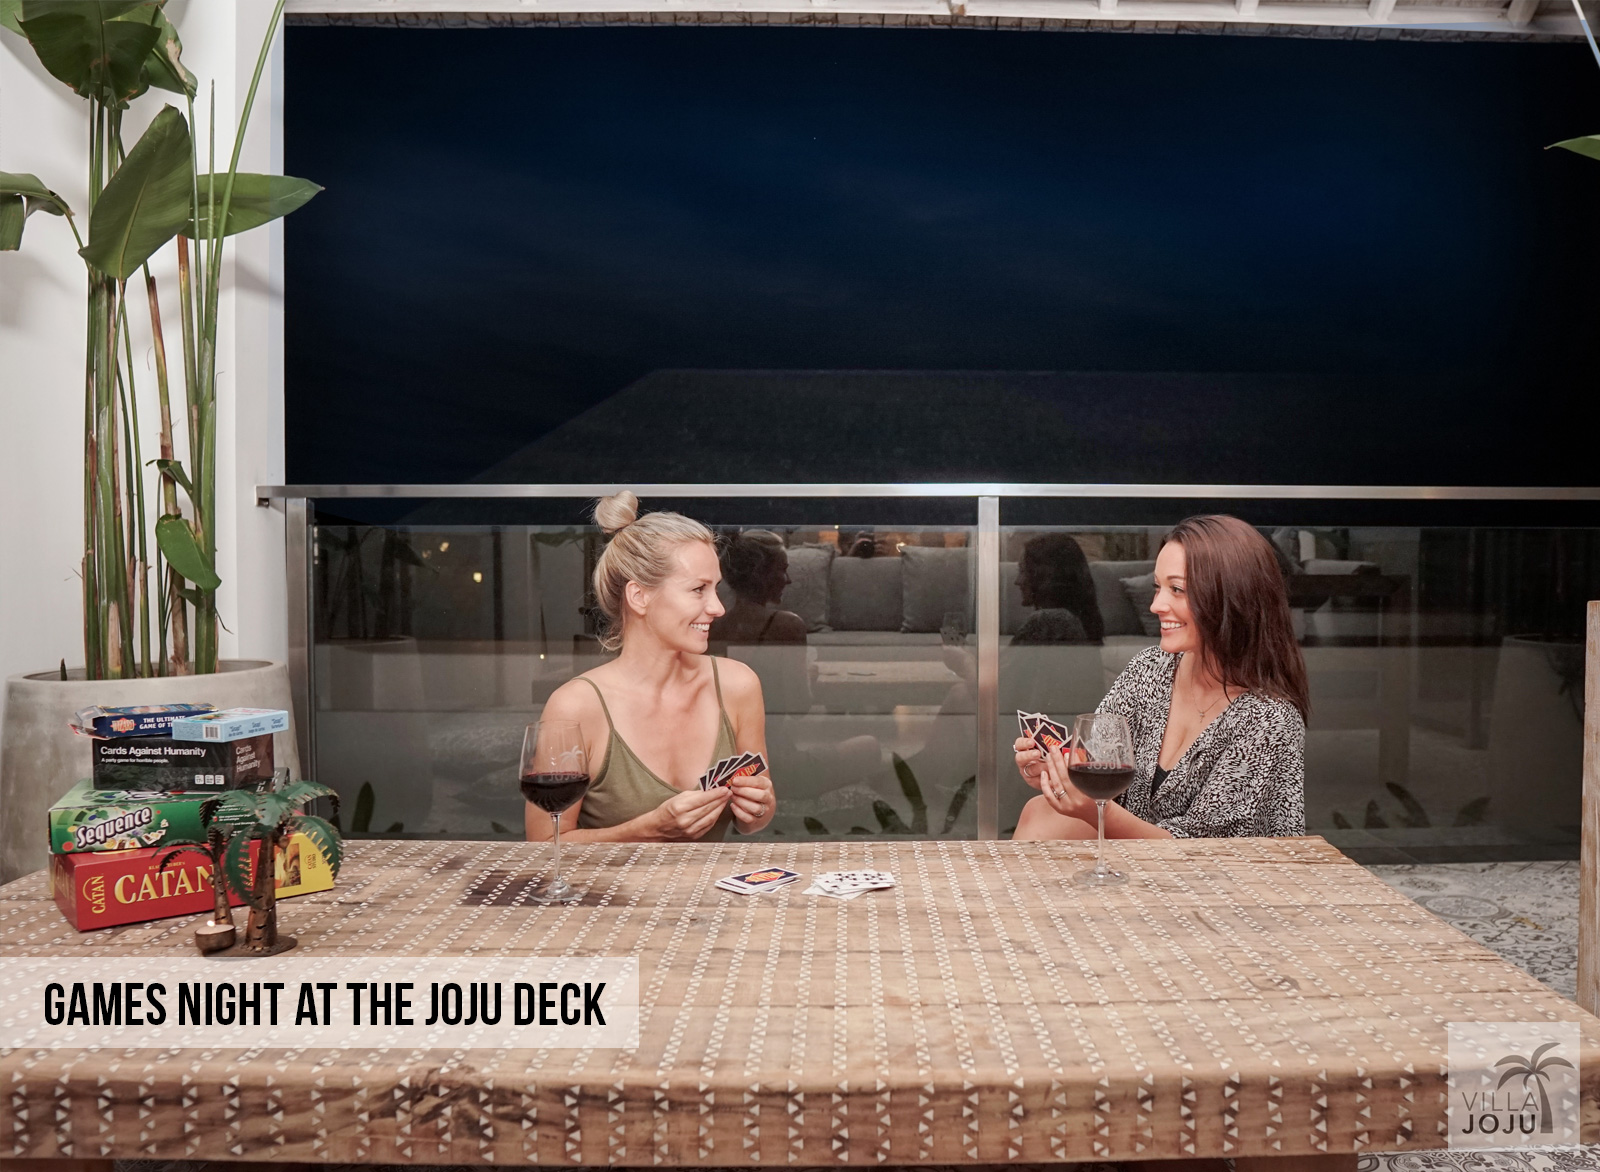 Games Night at the JOJU Deck